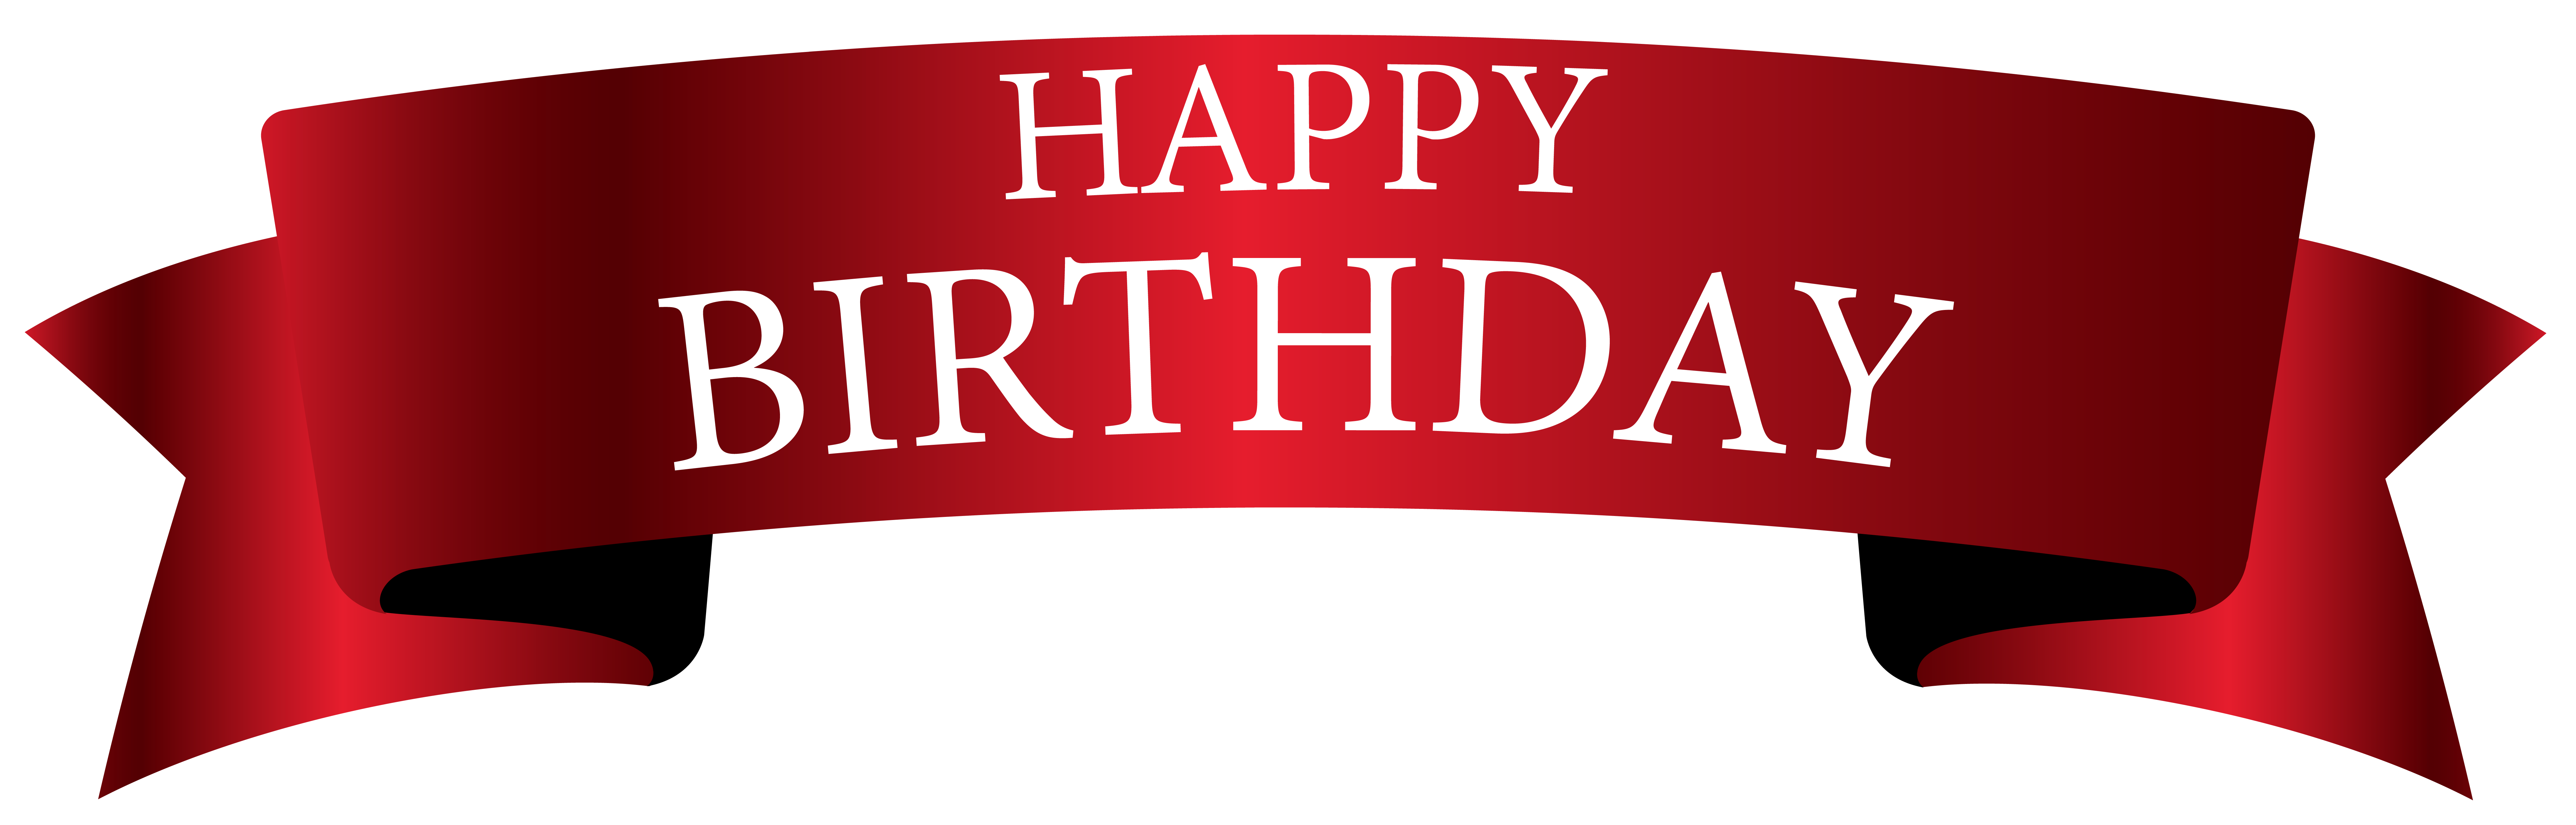 Clipart plane banner. Red happy birthday incep